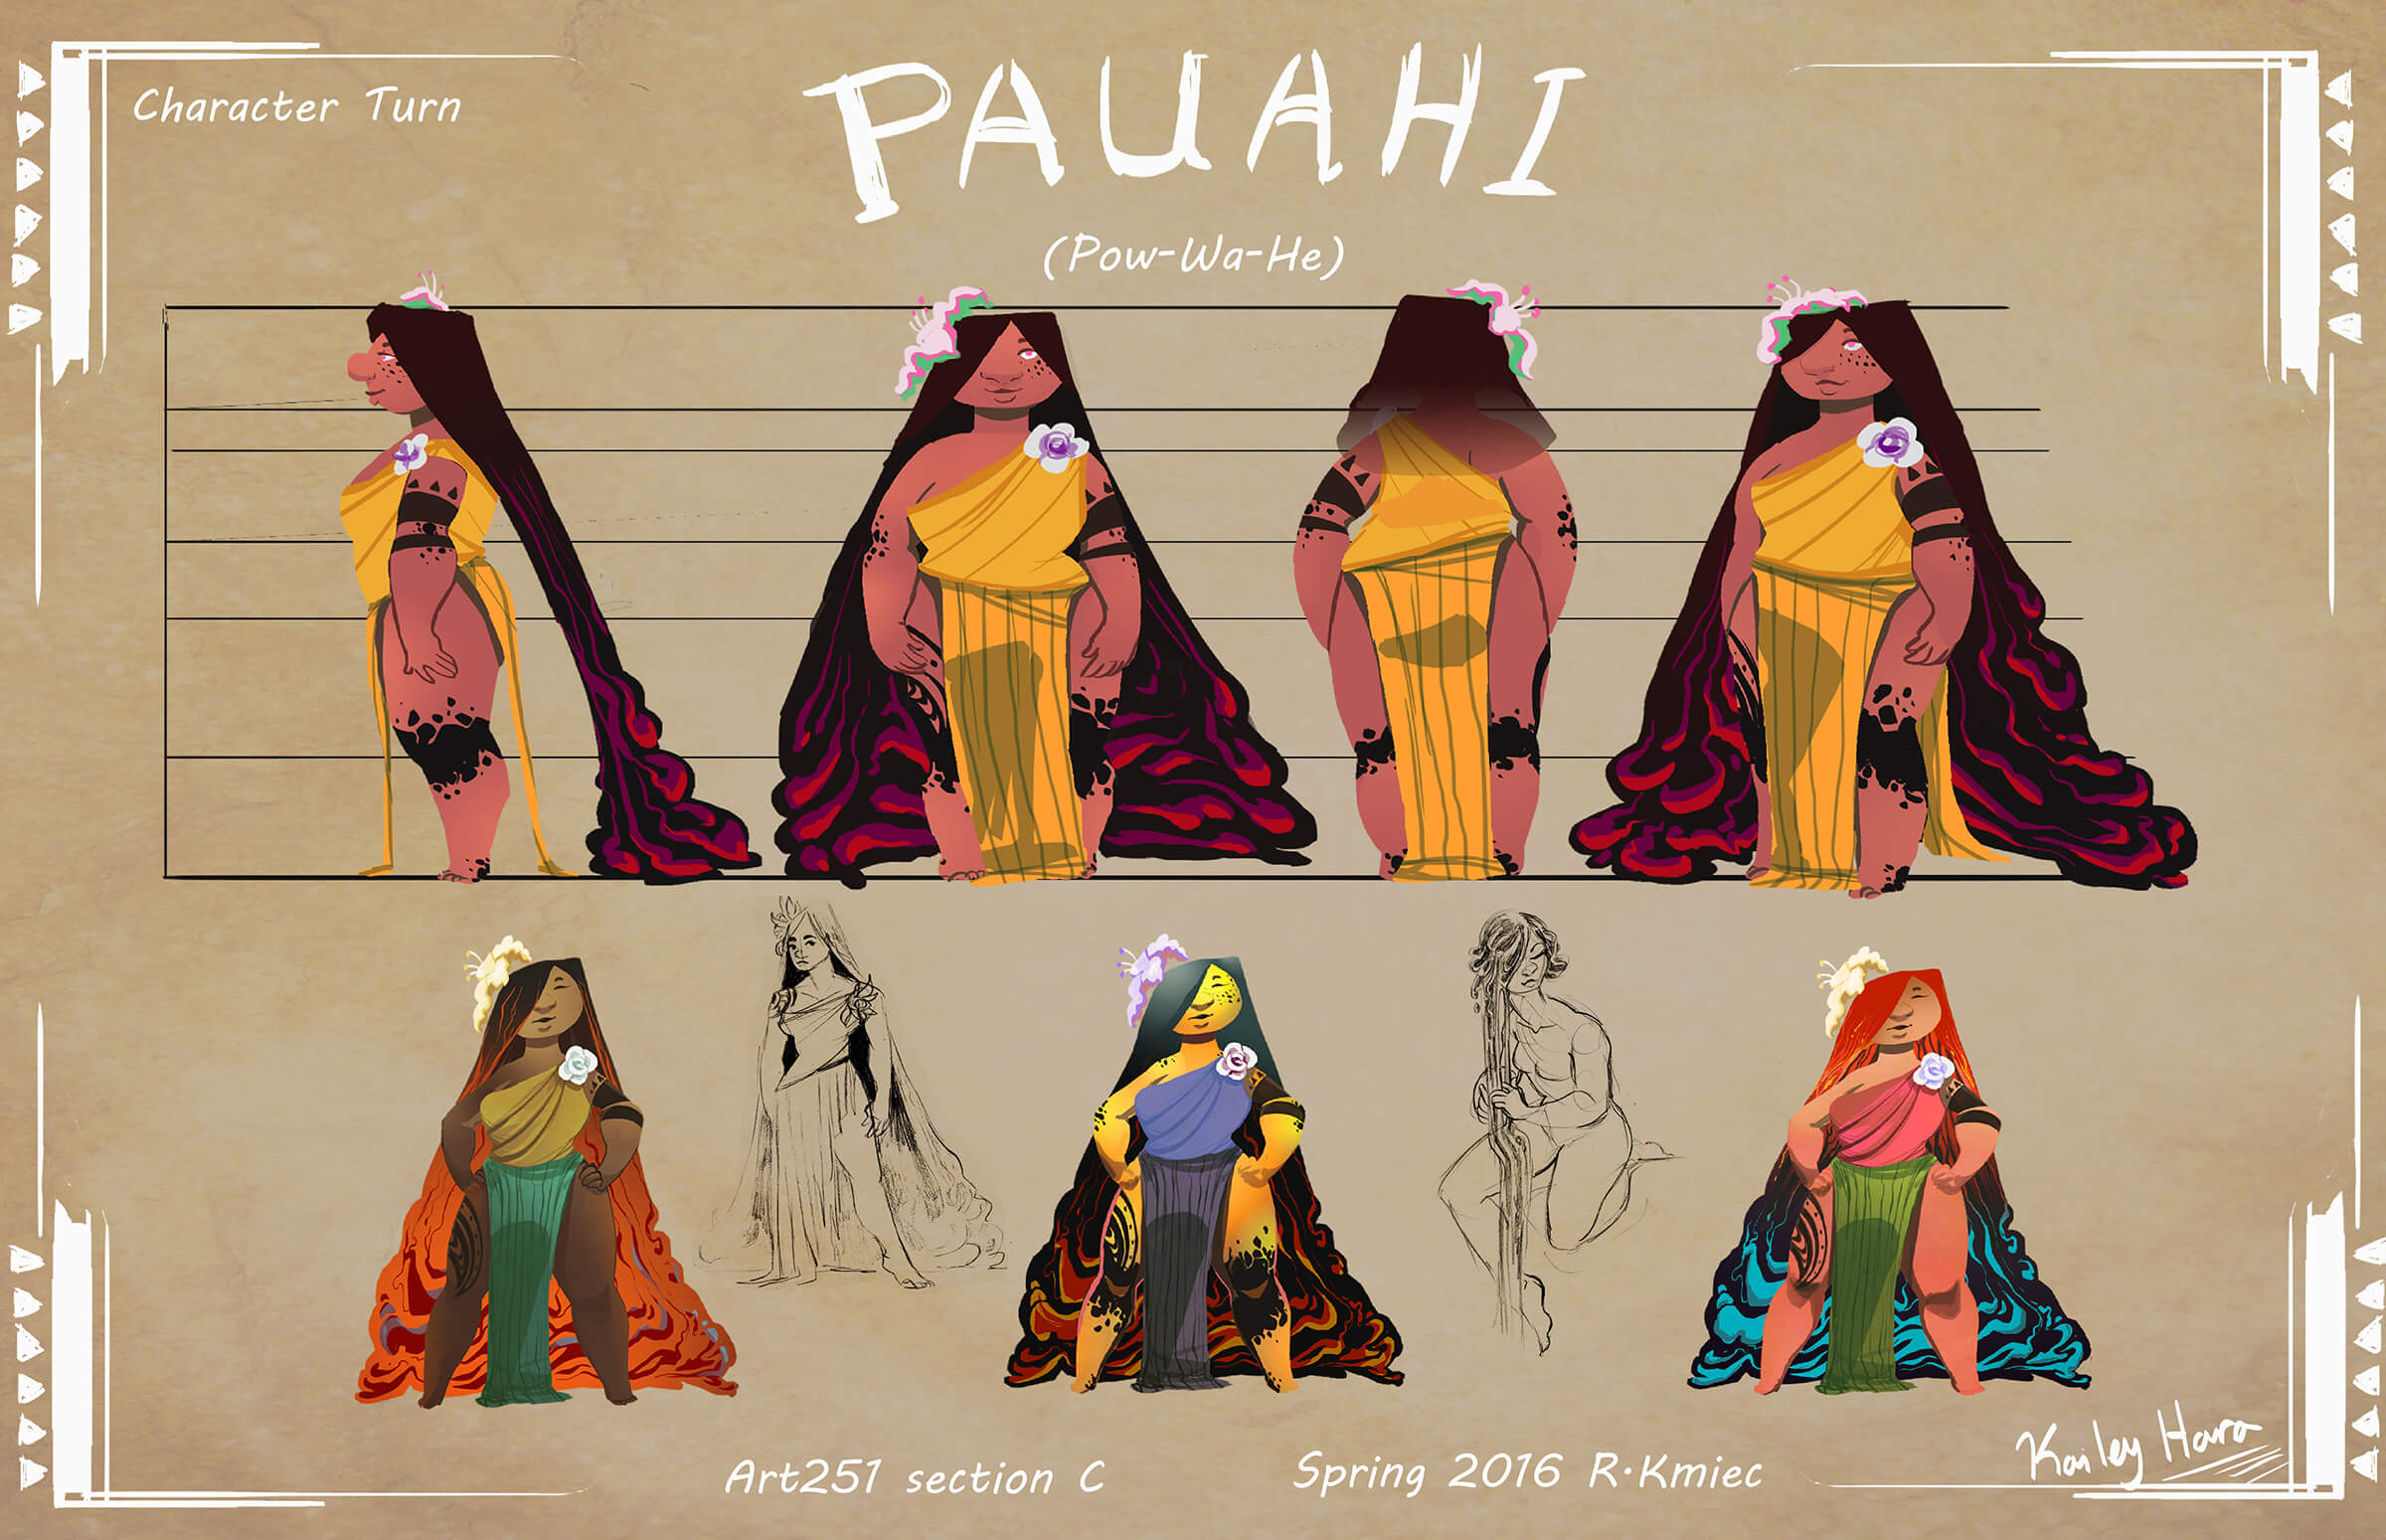 digital painting of a female character named pauahi with floor-length hair, wearing a toga-like dress